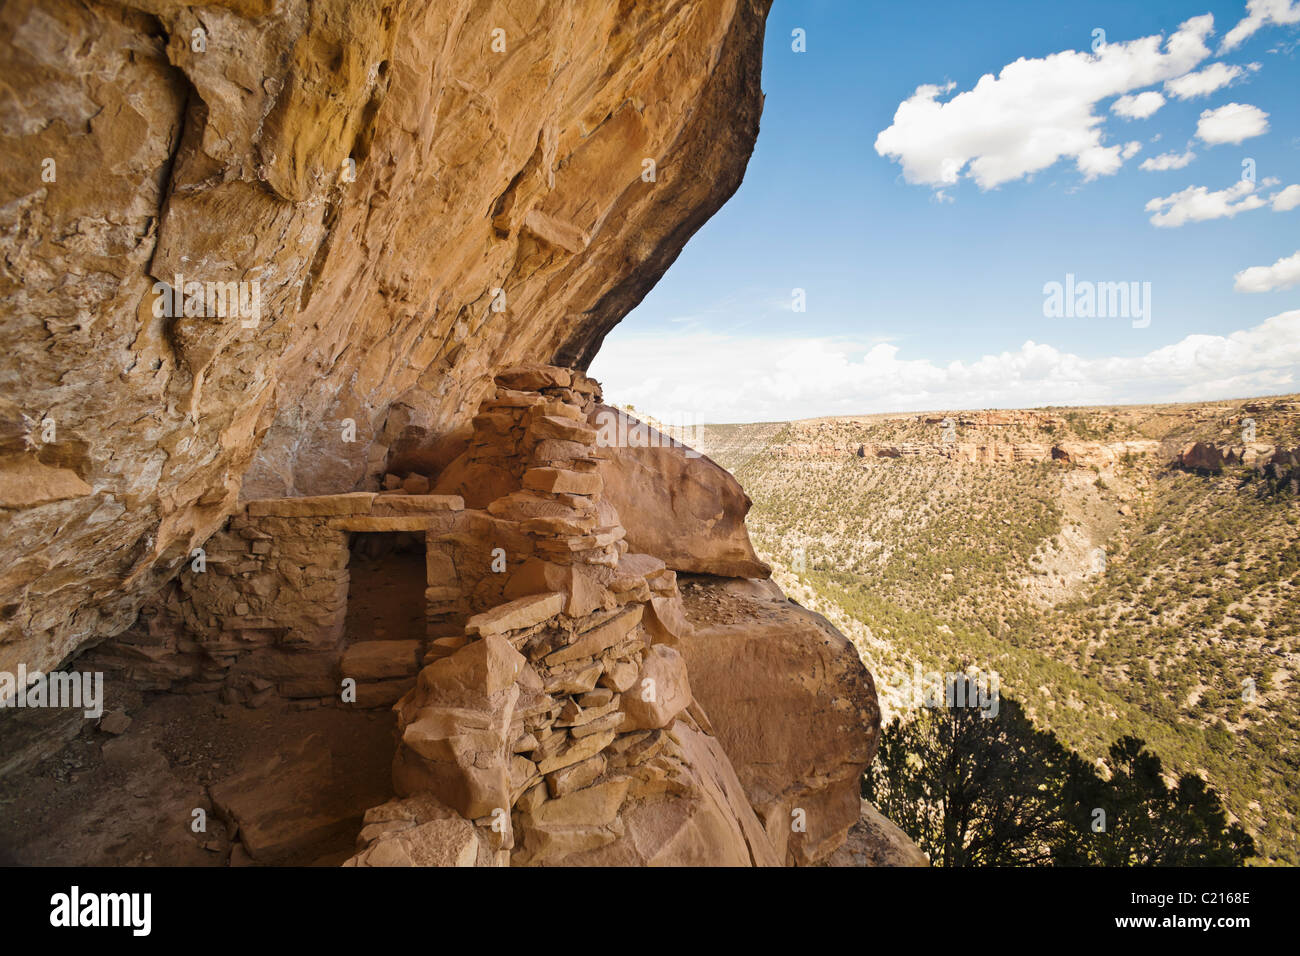 A view looking up the canyon while standing in Balcony House cliff dwelling in Mesa Verde National Park, Colorado, USA. Stock Photo